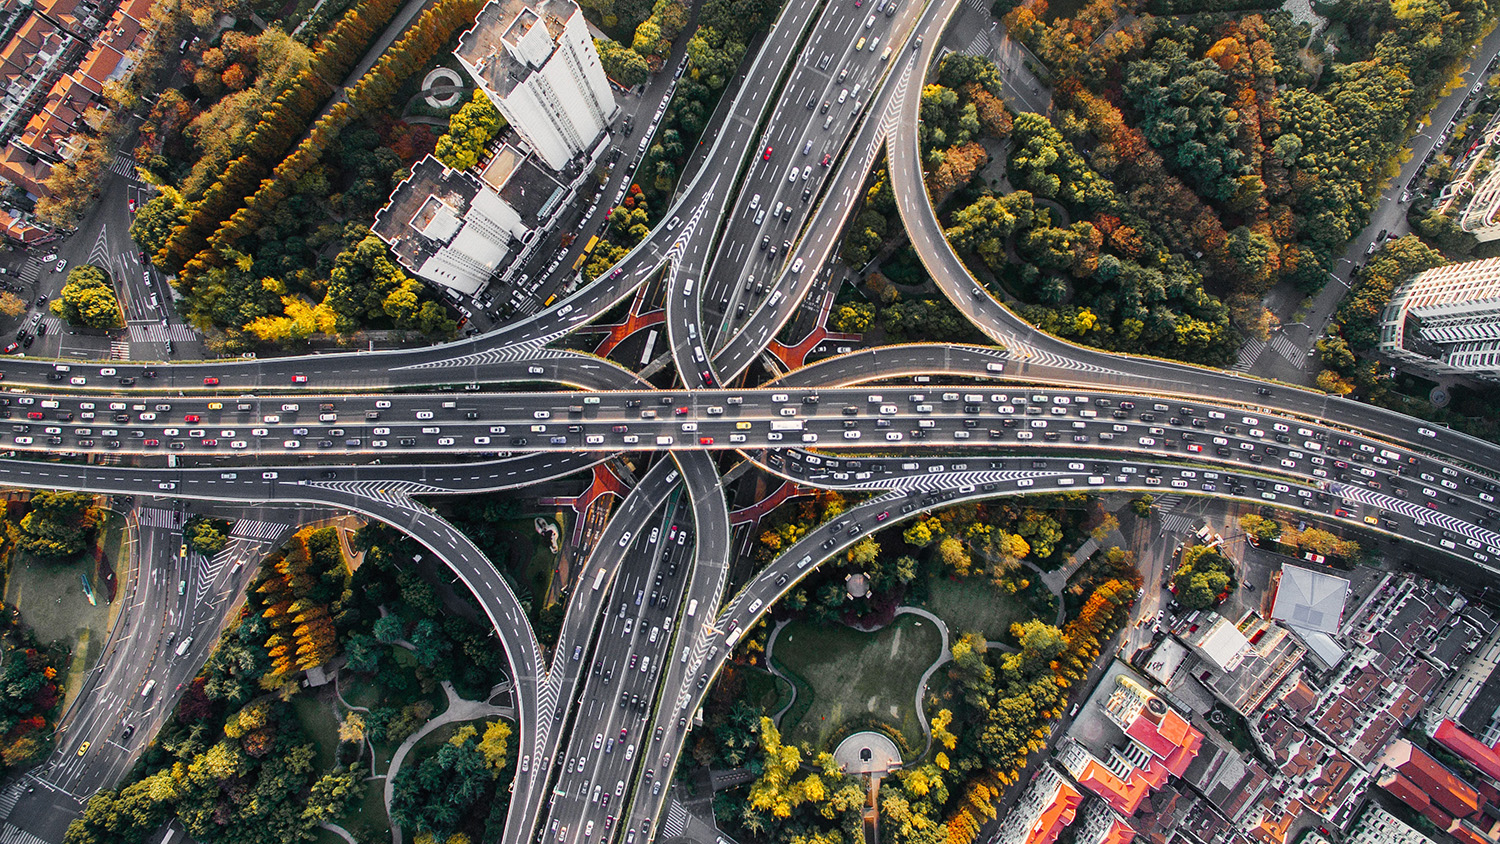 aerial photo of a complex highway traffic interchange